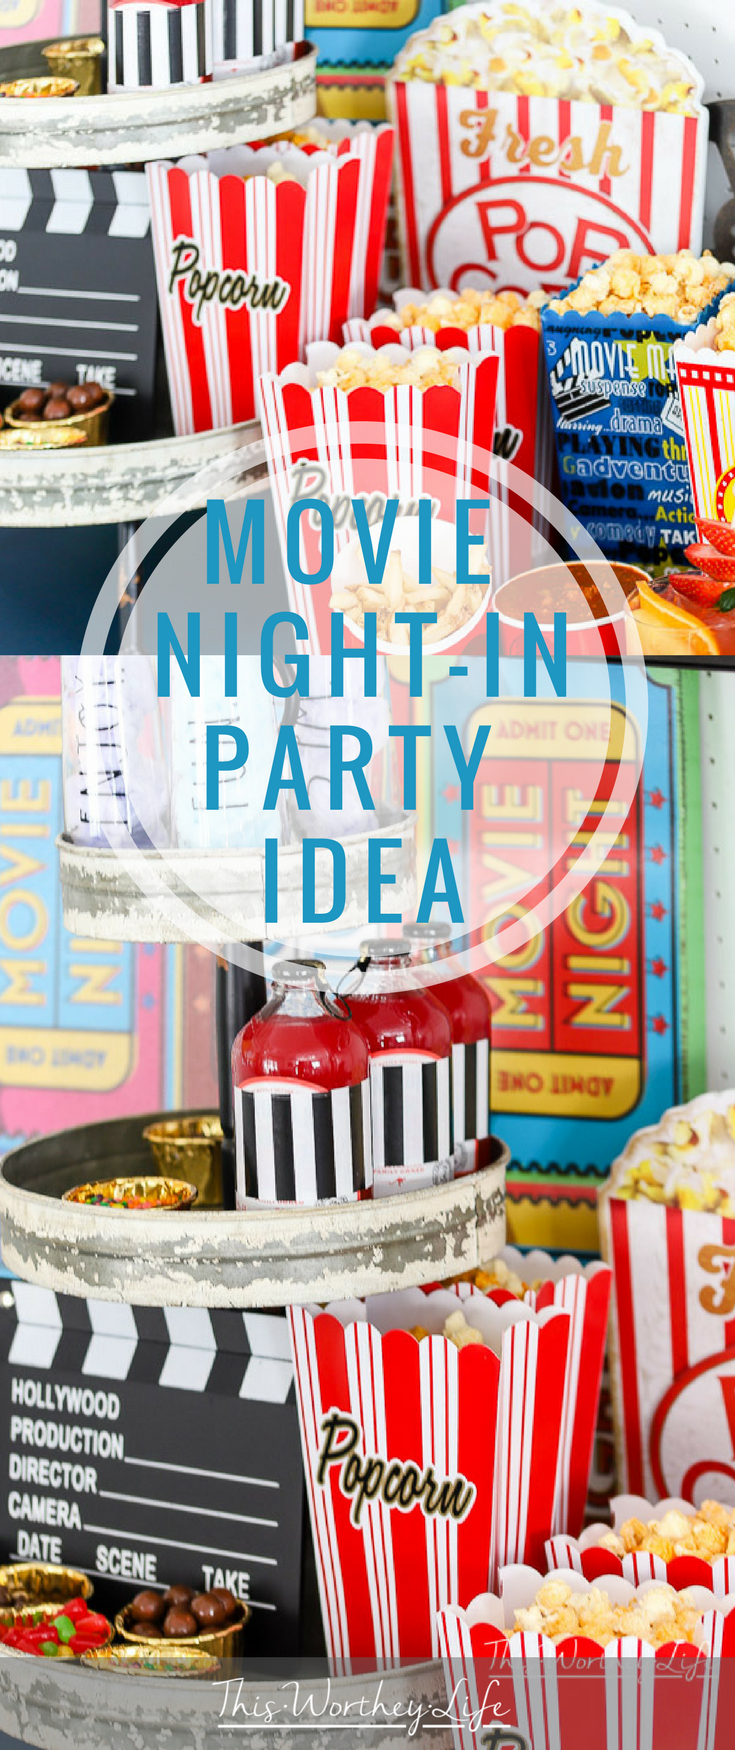 Movie Night Party Ideas for Couples-Create your own movie night-in party with snacks, popcorn, and drinks with our party ideas listed below. We're reminiscing about the drive-in movie days and created an easy movie night party idea for our friends and family!